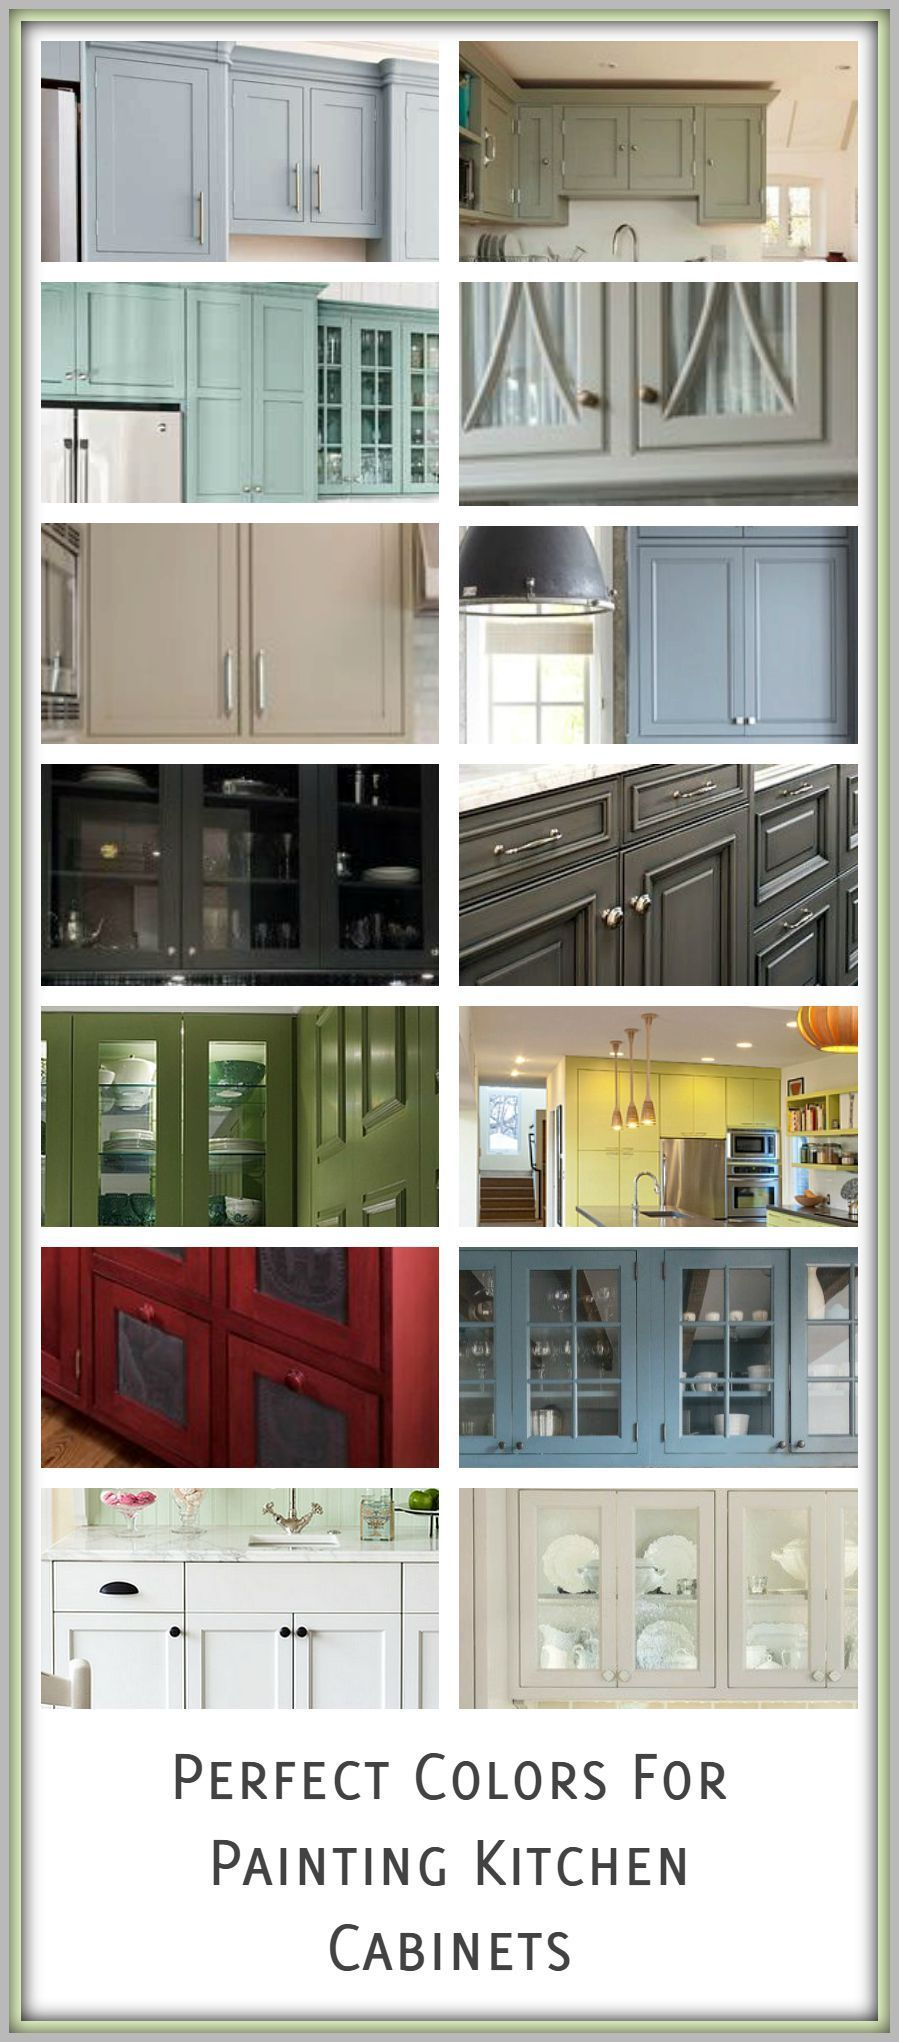 When Trying To Decide On A Color Paint Your Kitchen Cabinets Keep In Mind That Choice Is Little Diffe Than Painting Piece Of